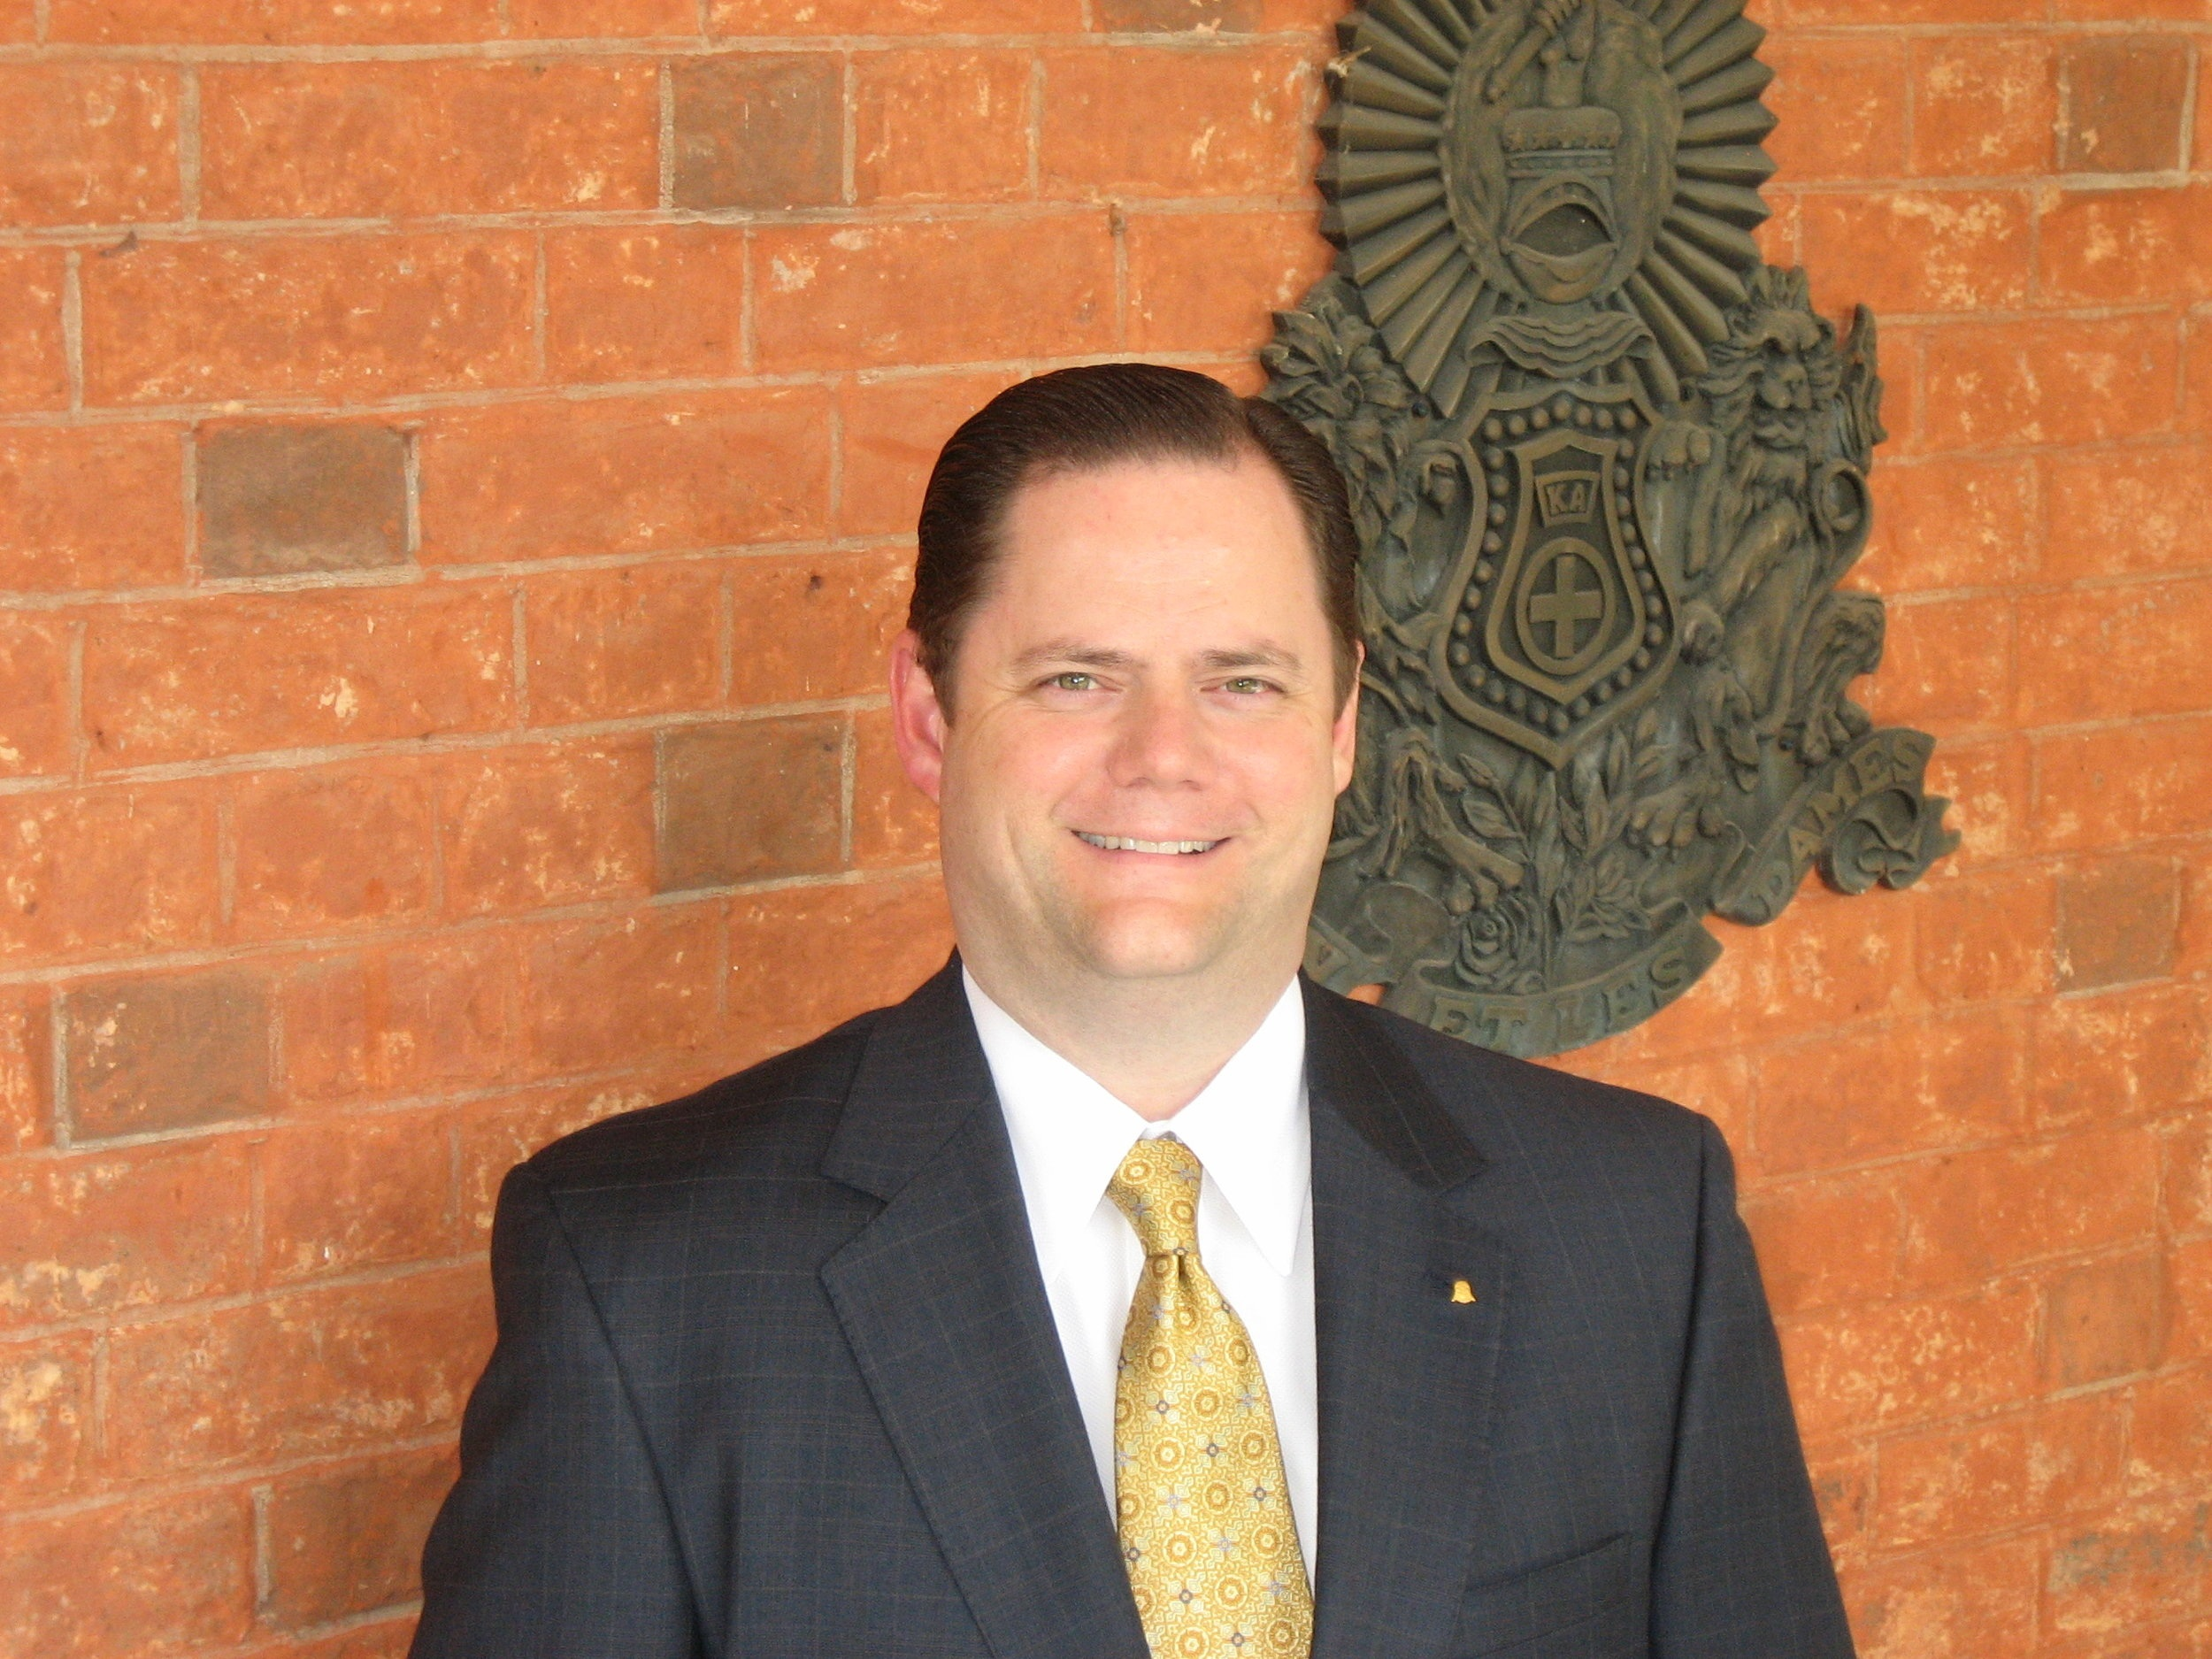 FEA Liaison: - Larry Wiese | Kappa Alpha OrderExecutive Director, Kappa Alpha Order – Larry oversees our collaborative relationship with inter/national headquarters and interfraternal partners.